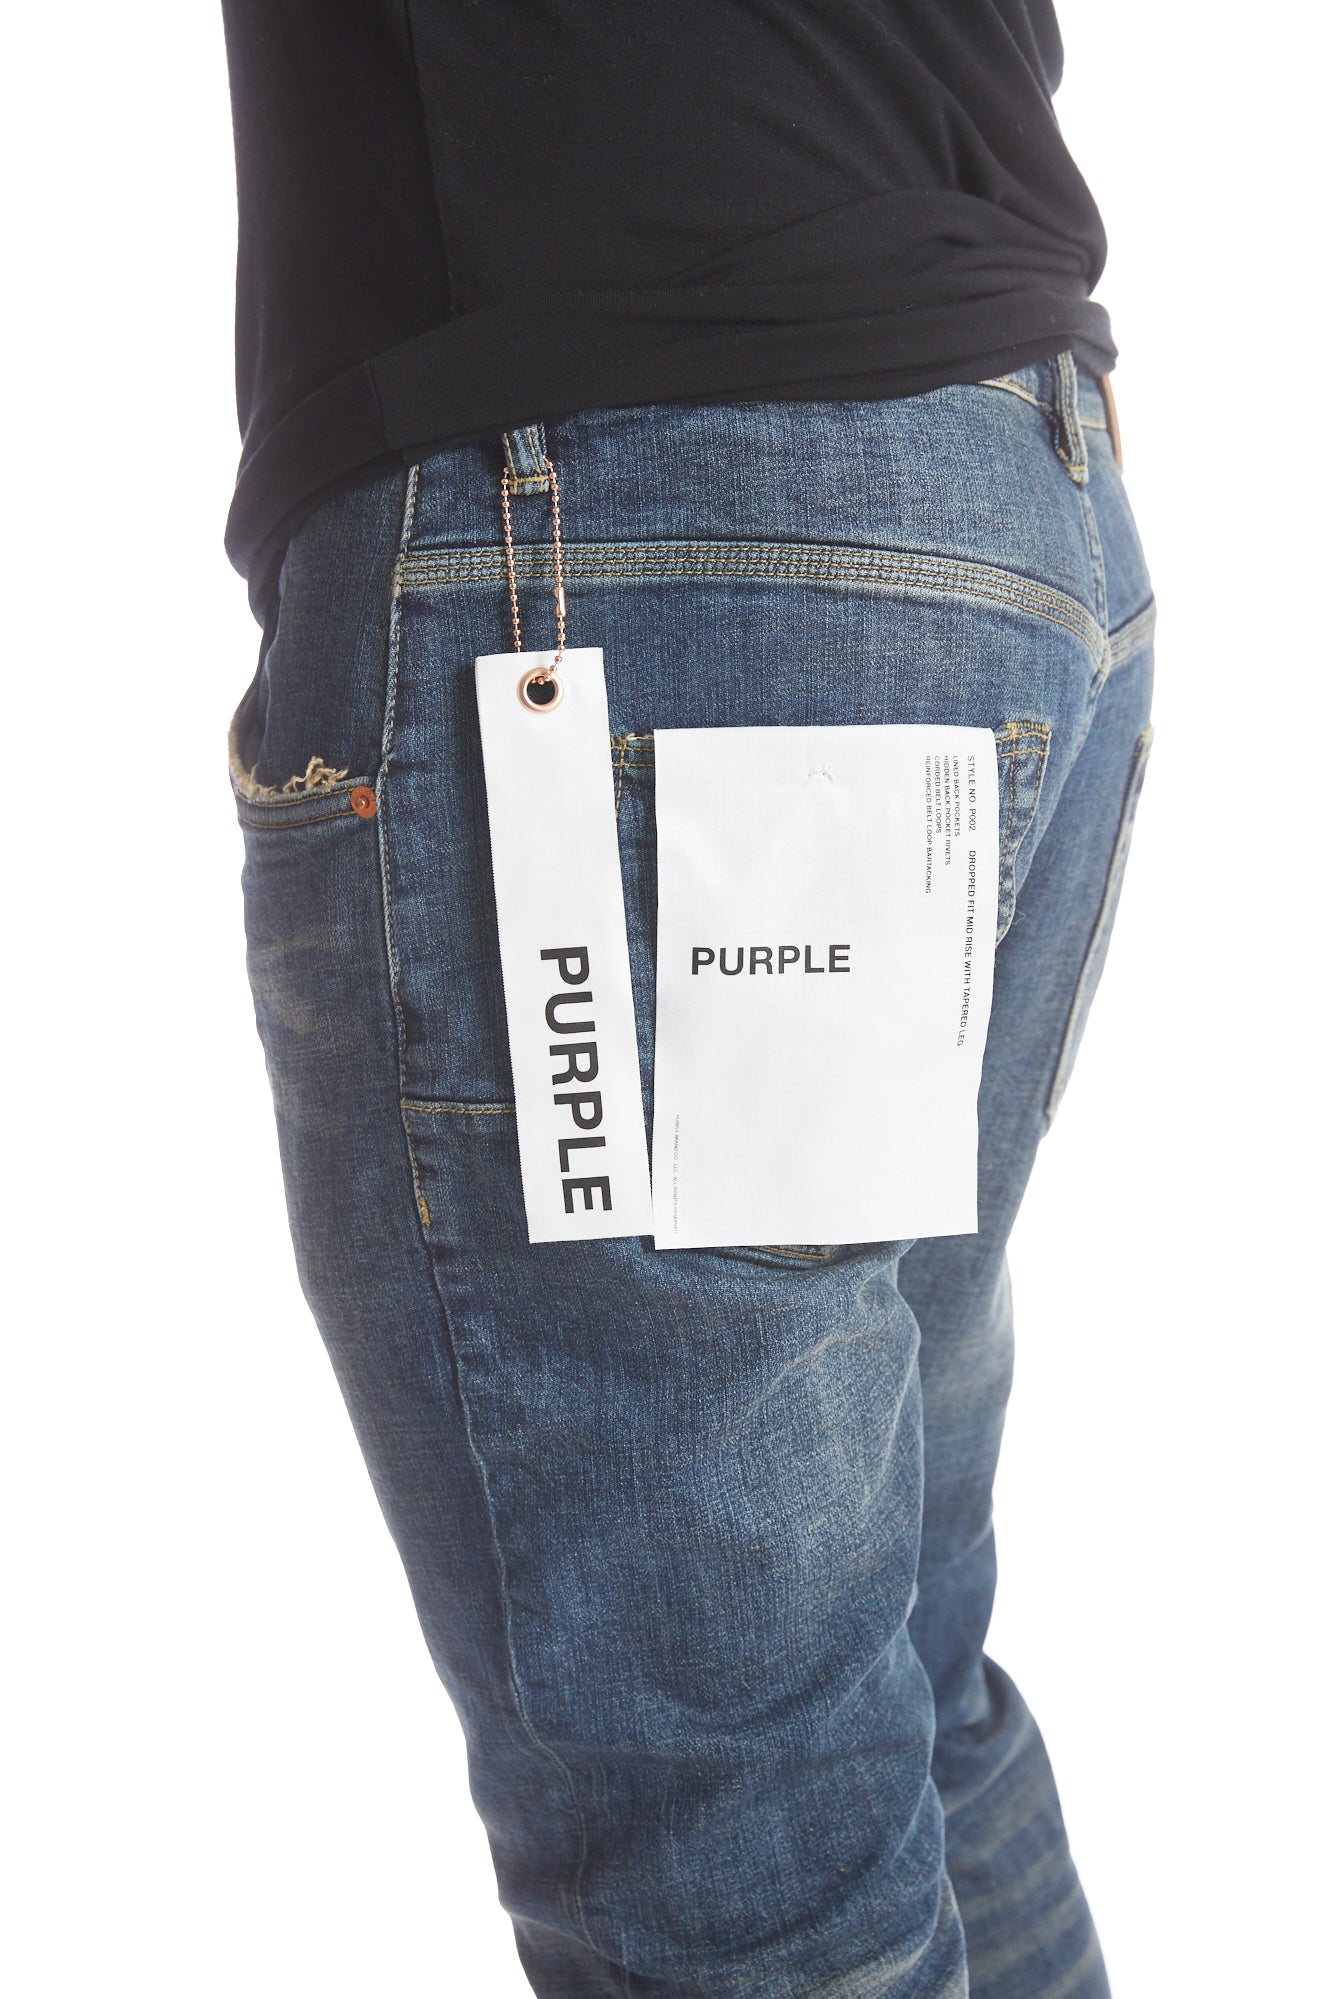 Purple P001 3 Year Wash Blue Jeans